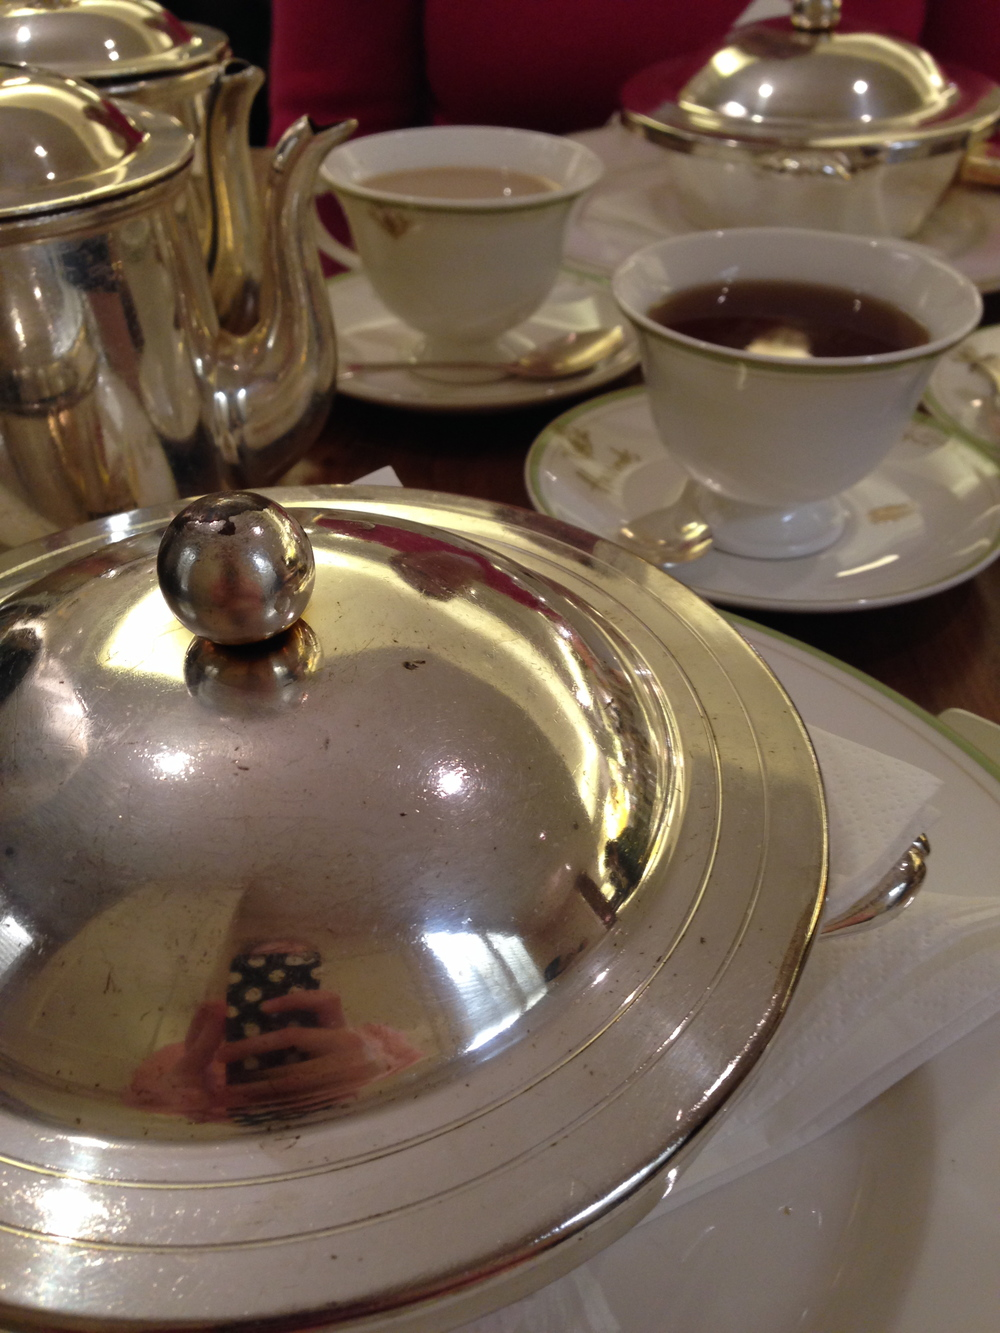 Silver Service in the Harrods Tea Room